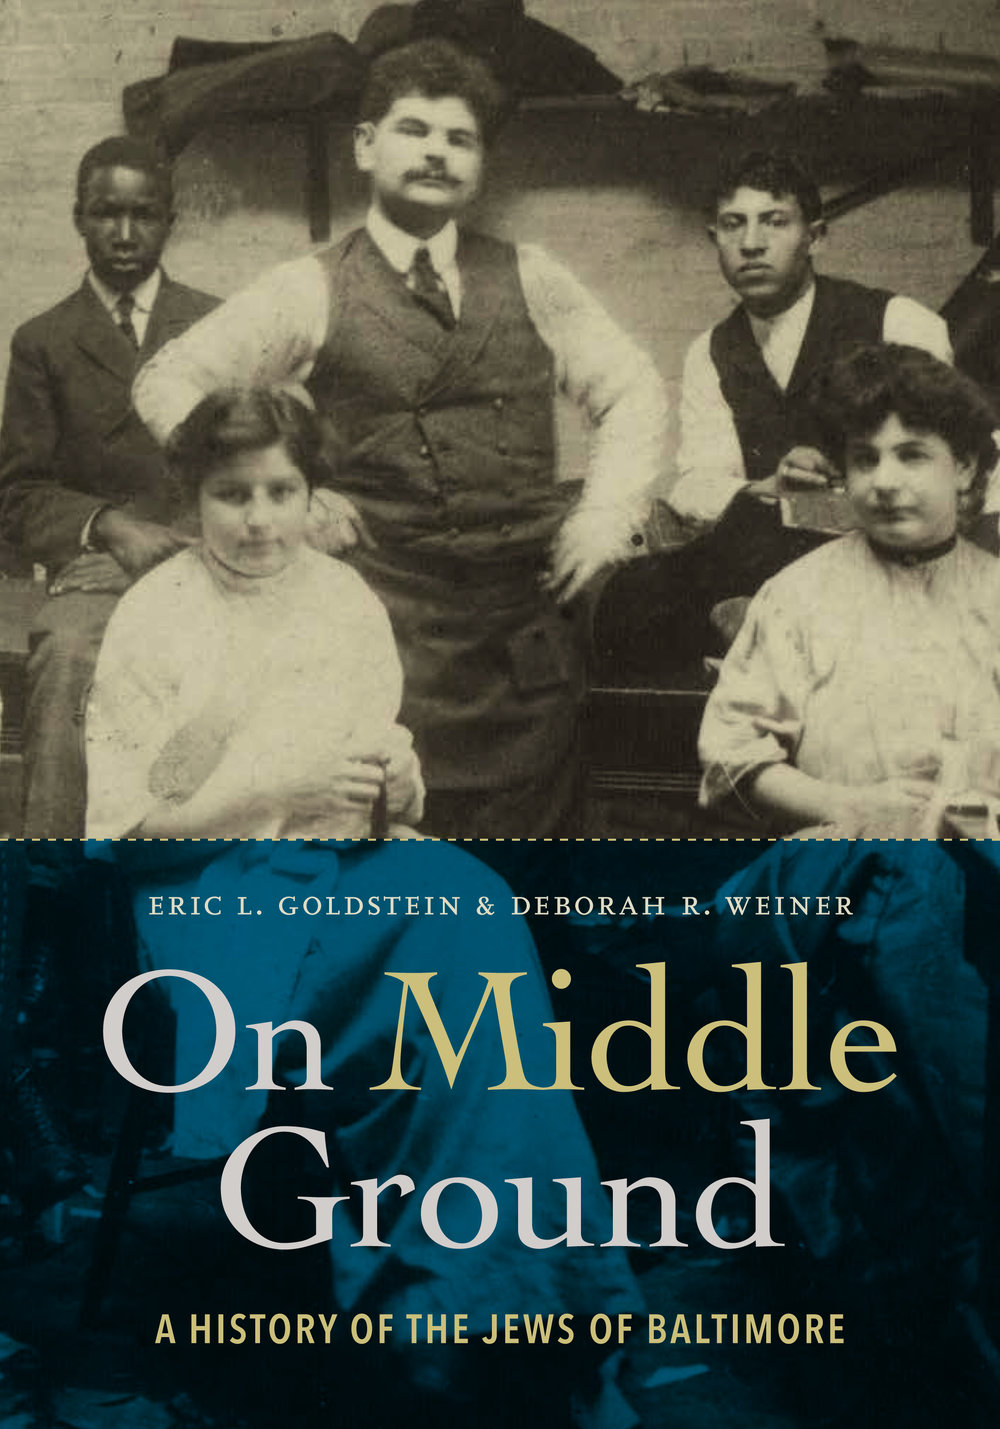 In some ways a history of American Jews in microcosm,  On Middle Ground  also reveals how Baltimore's position between North and South profoundly shaped Jewish life. Not just a Jewish story, the book illuminates both Baltimore and its Jews, showing how each influenced the other.   FINALIST, NATIONAL JEWISH BOOK AWARD IN AMERICAN JEWISH STUDIES, 2018    FIND OUT  MORE . BUY ON  AMAZON .